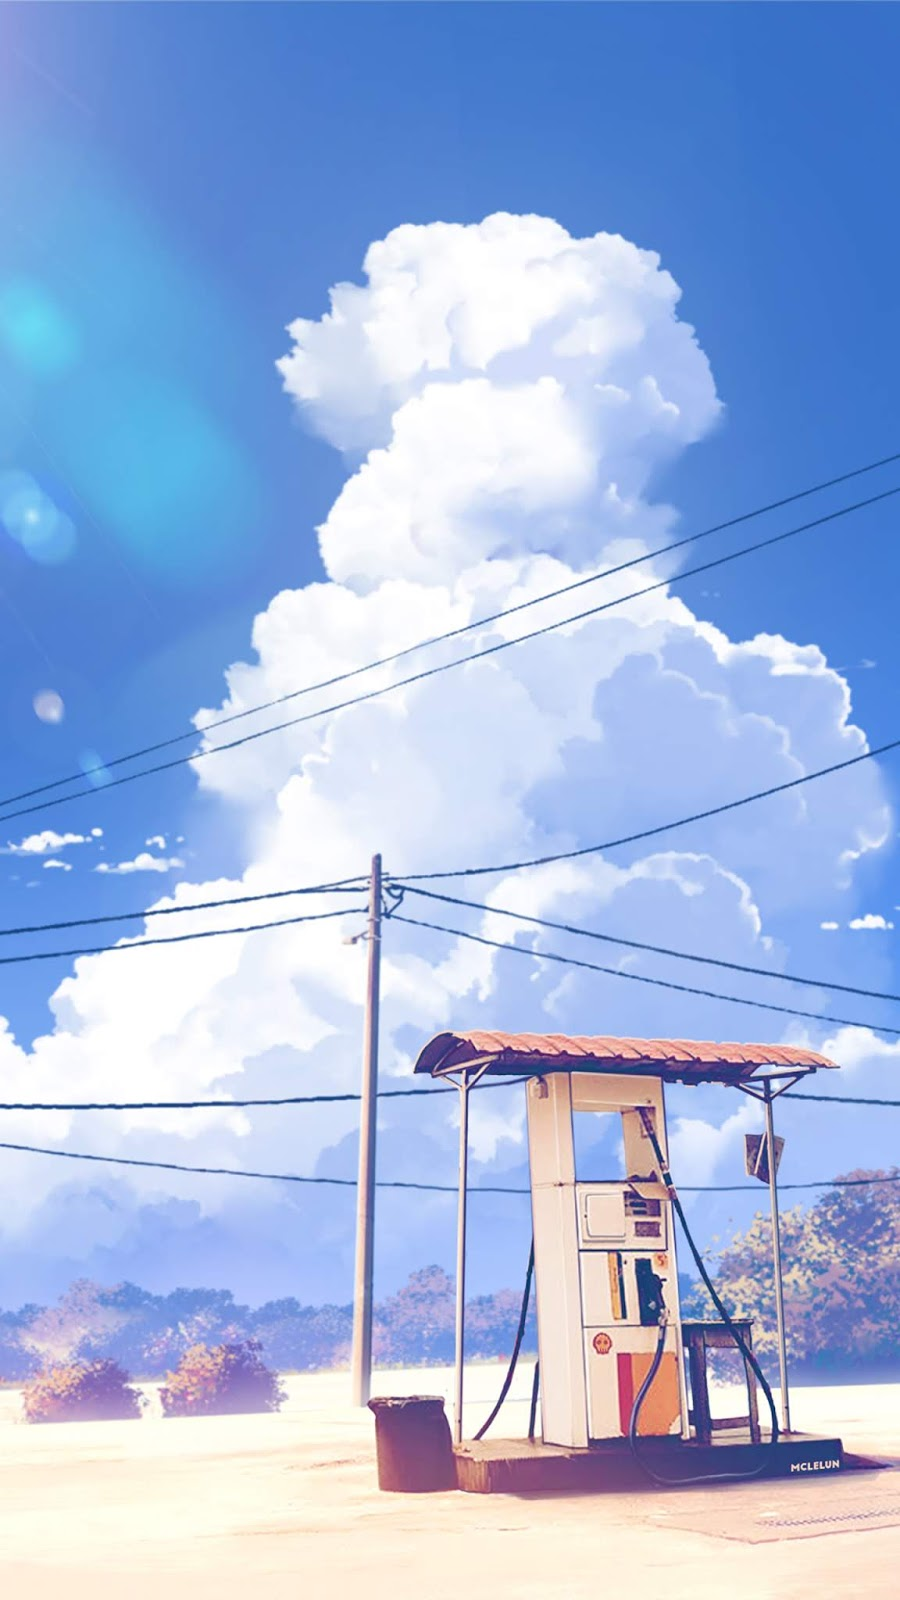 Cloudy scenery